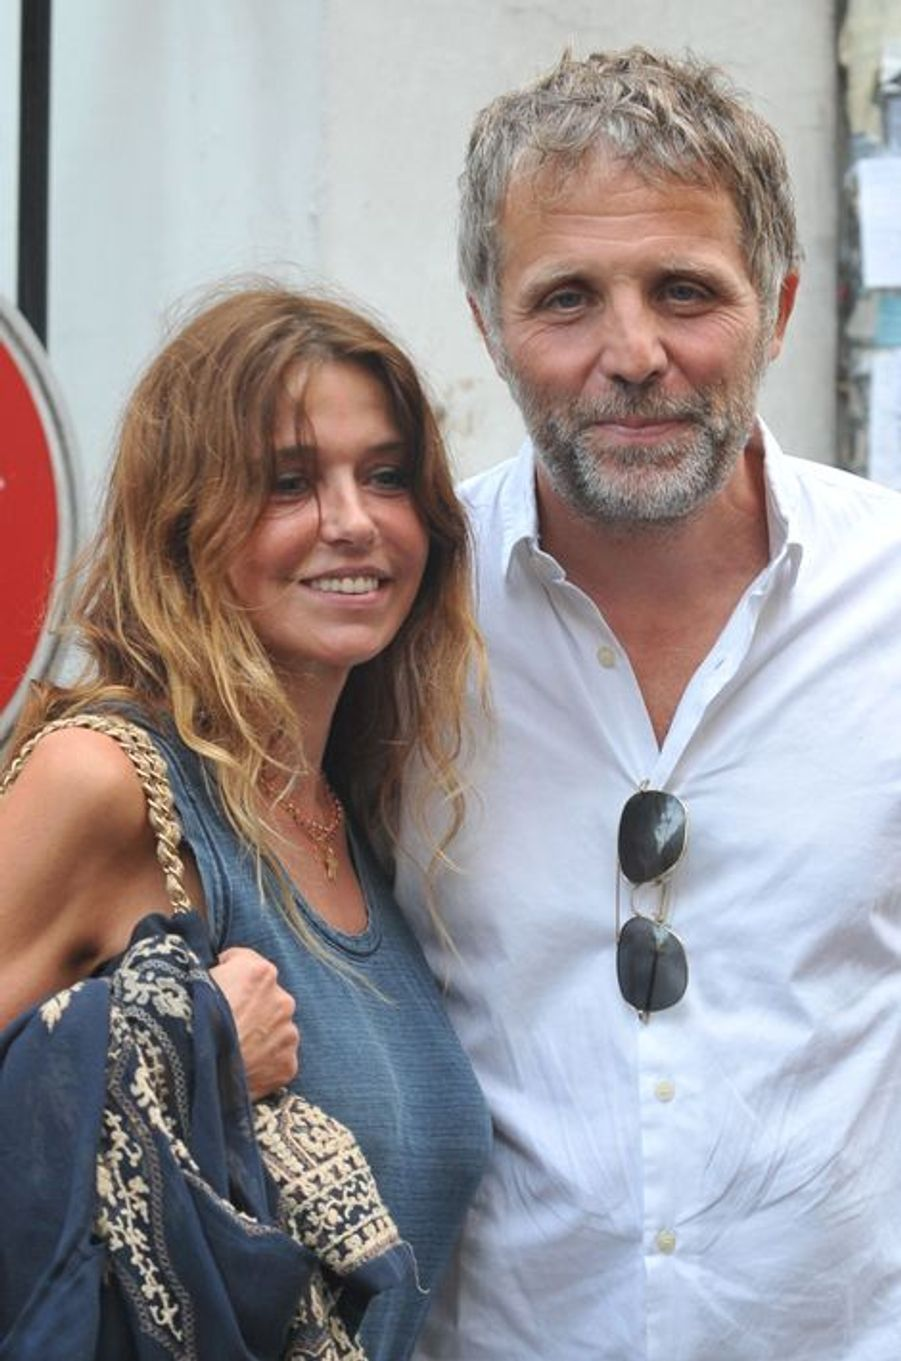 Stéphane Guillon au mariage de Macha Méril et Michel Legrand à Paris, le 18 septembre 2014.